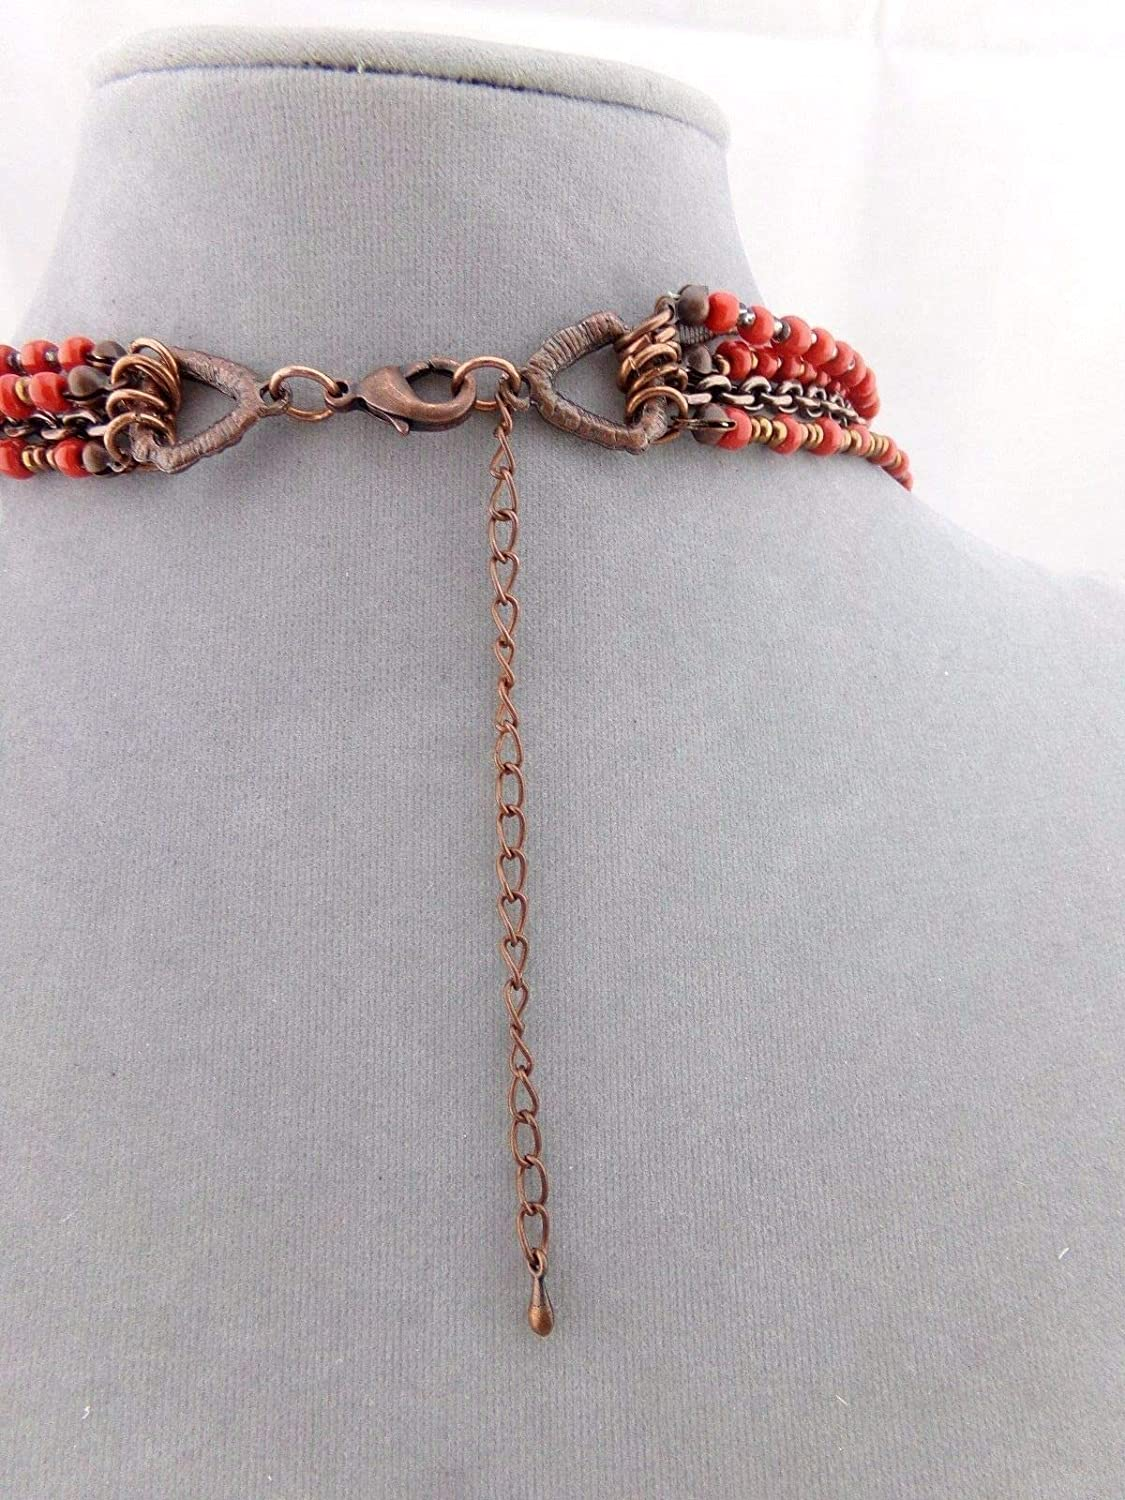 Long Layered Red Bead Necklace Earring Set Fashion Jewelry New #ID-206